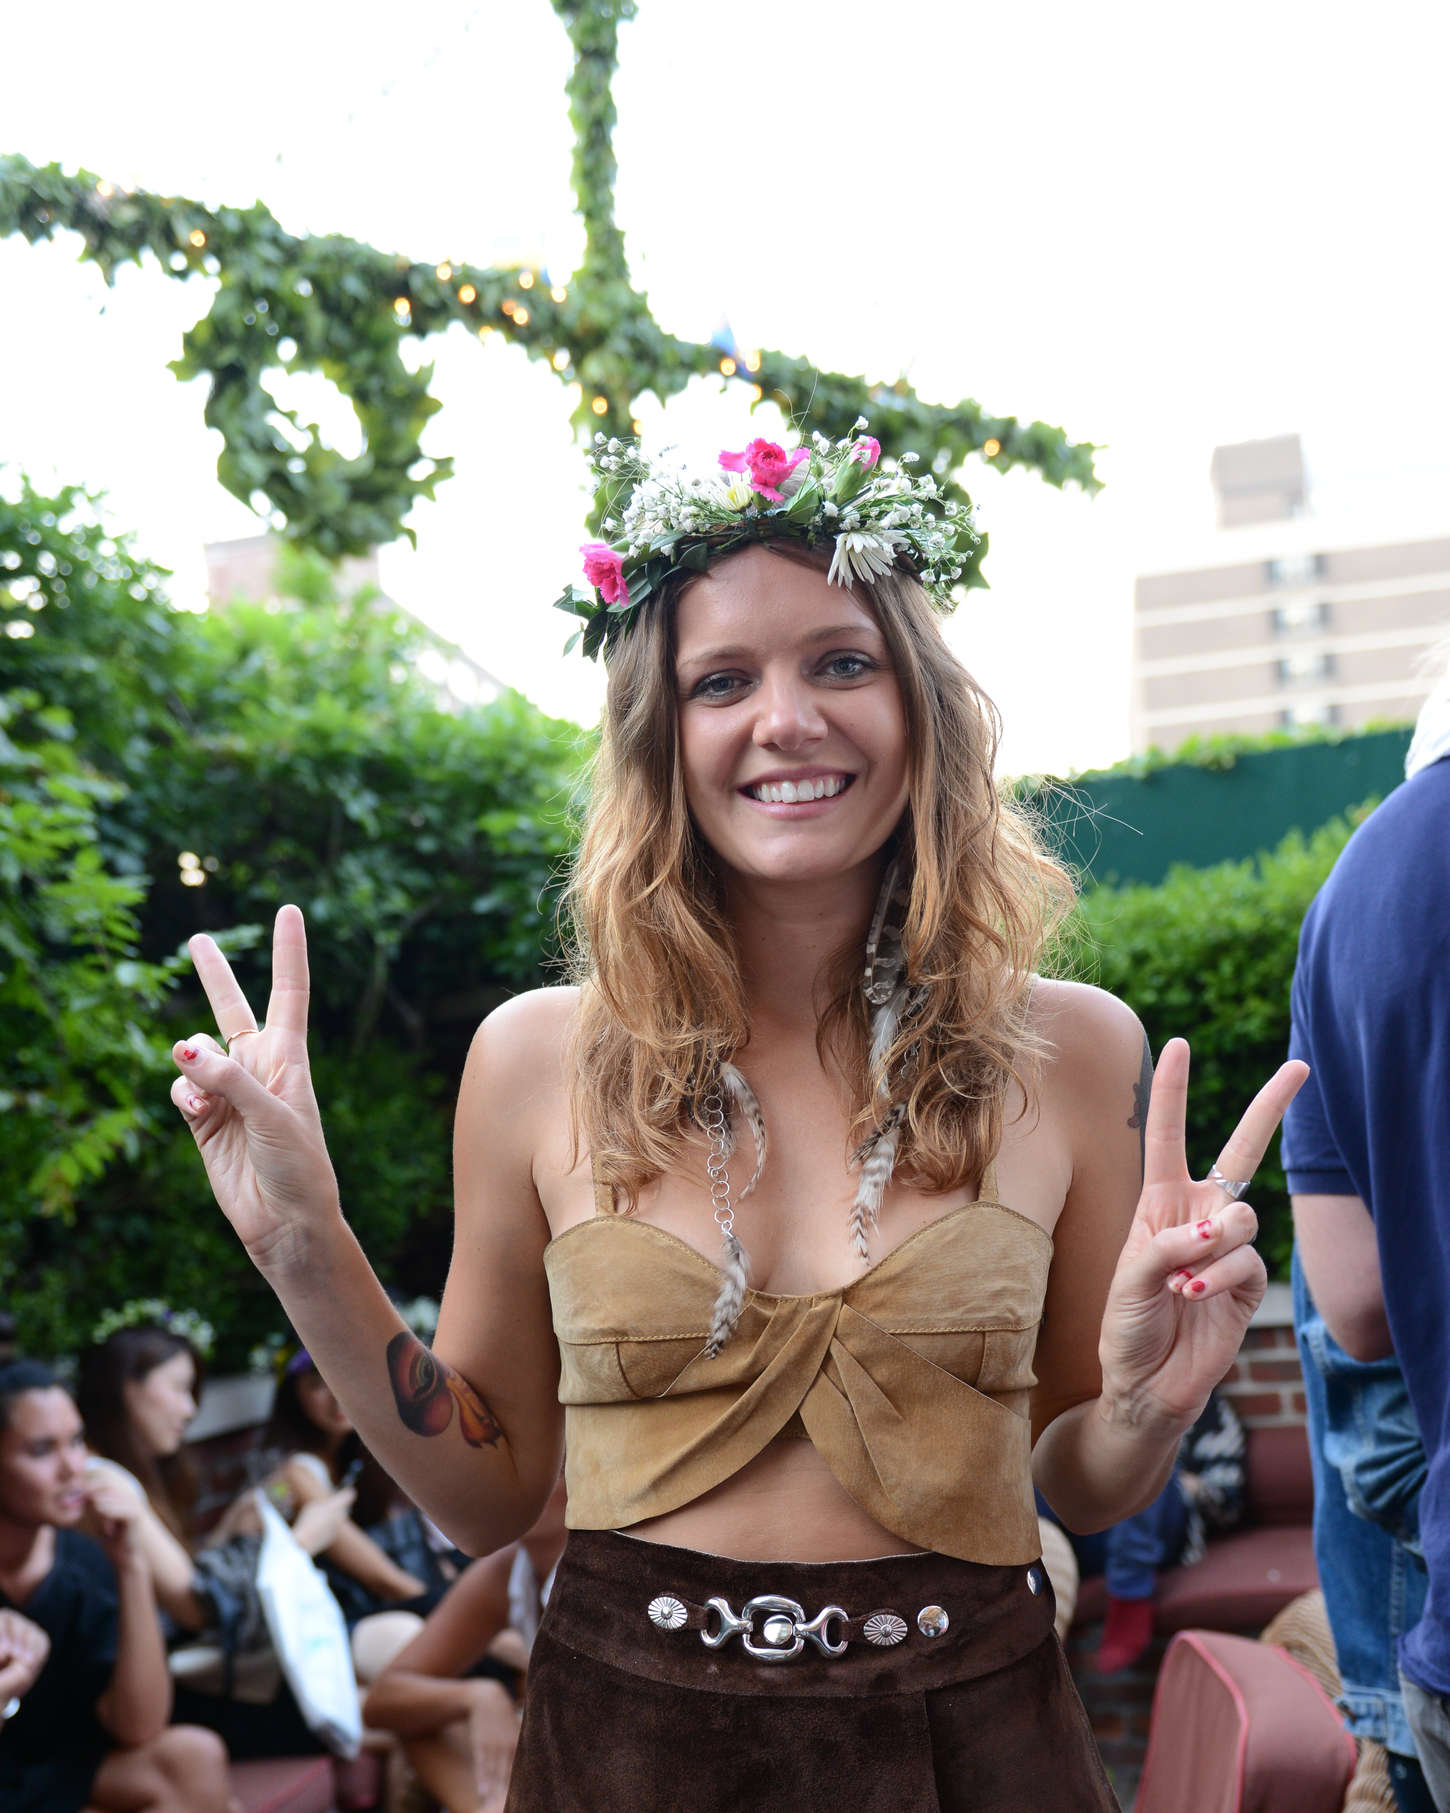 Tove Lo NYCult Fashion GPS Present Midsummer X NYNY in New York